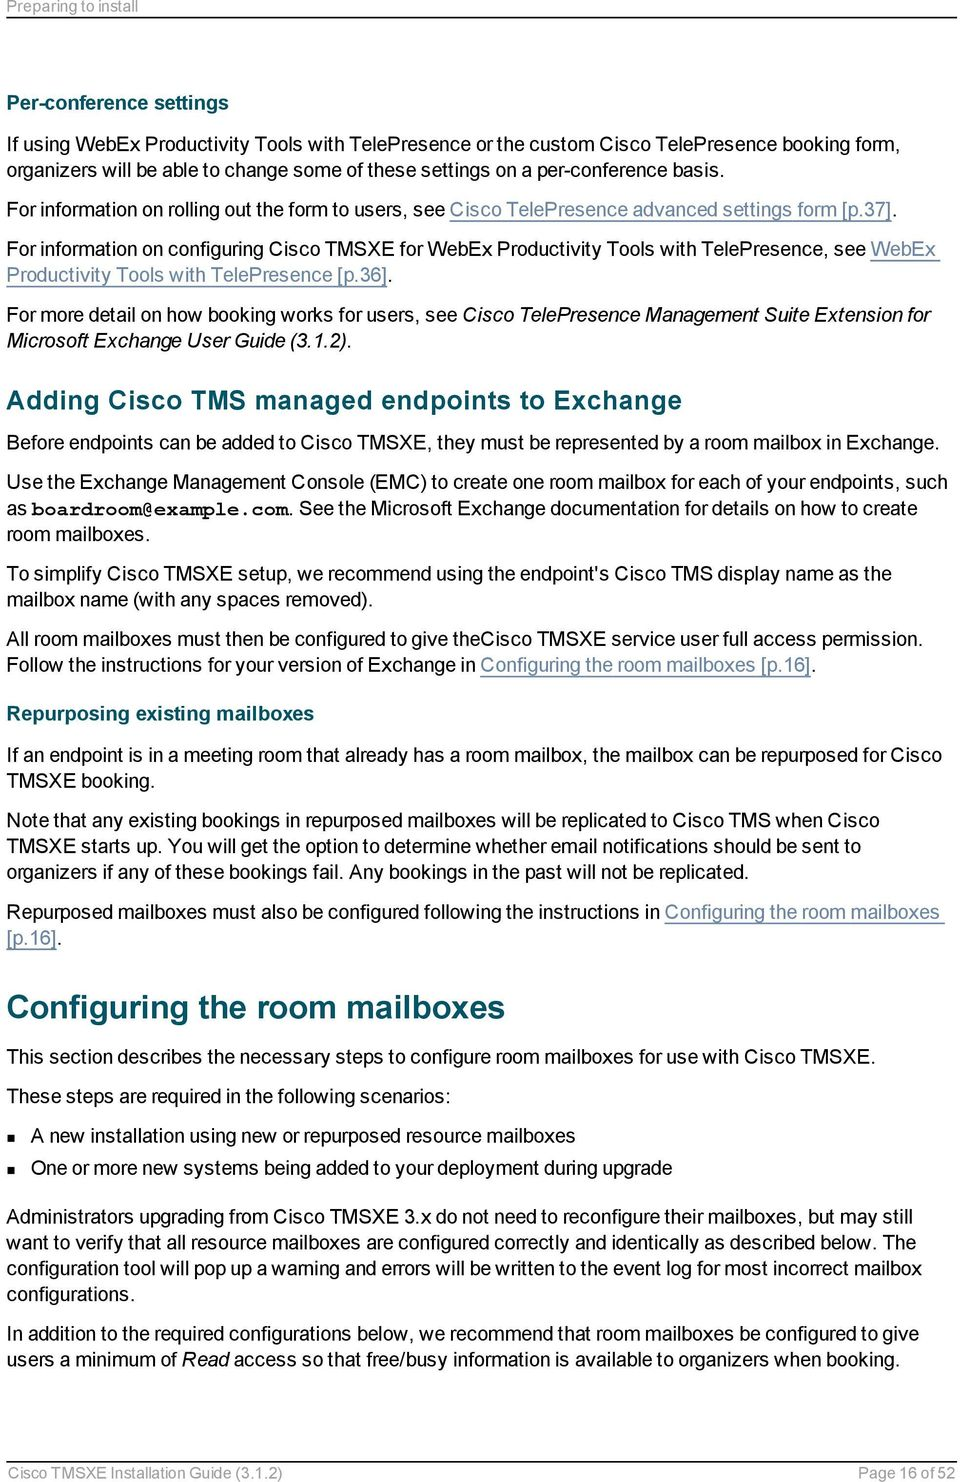 For information on configuring Cisco TMSXE for WebEx Productivity Tools  with TelePresence, see WebEx Productivity